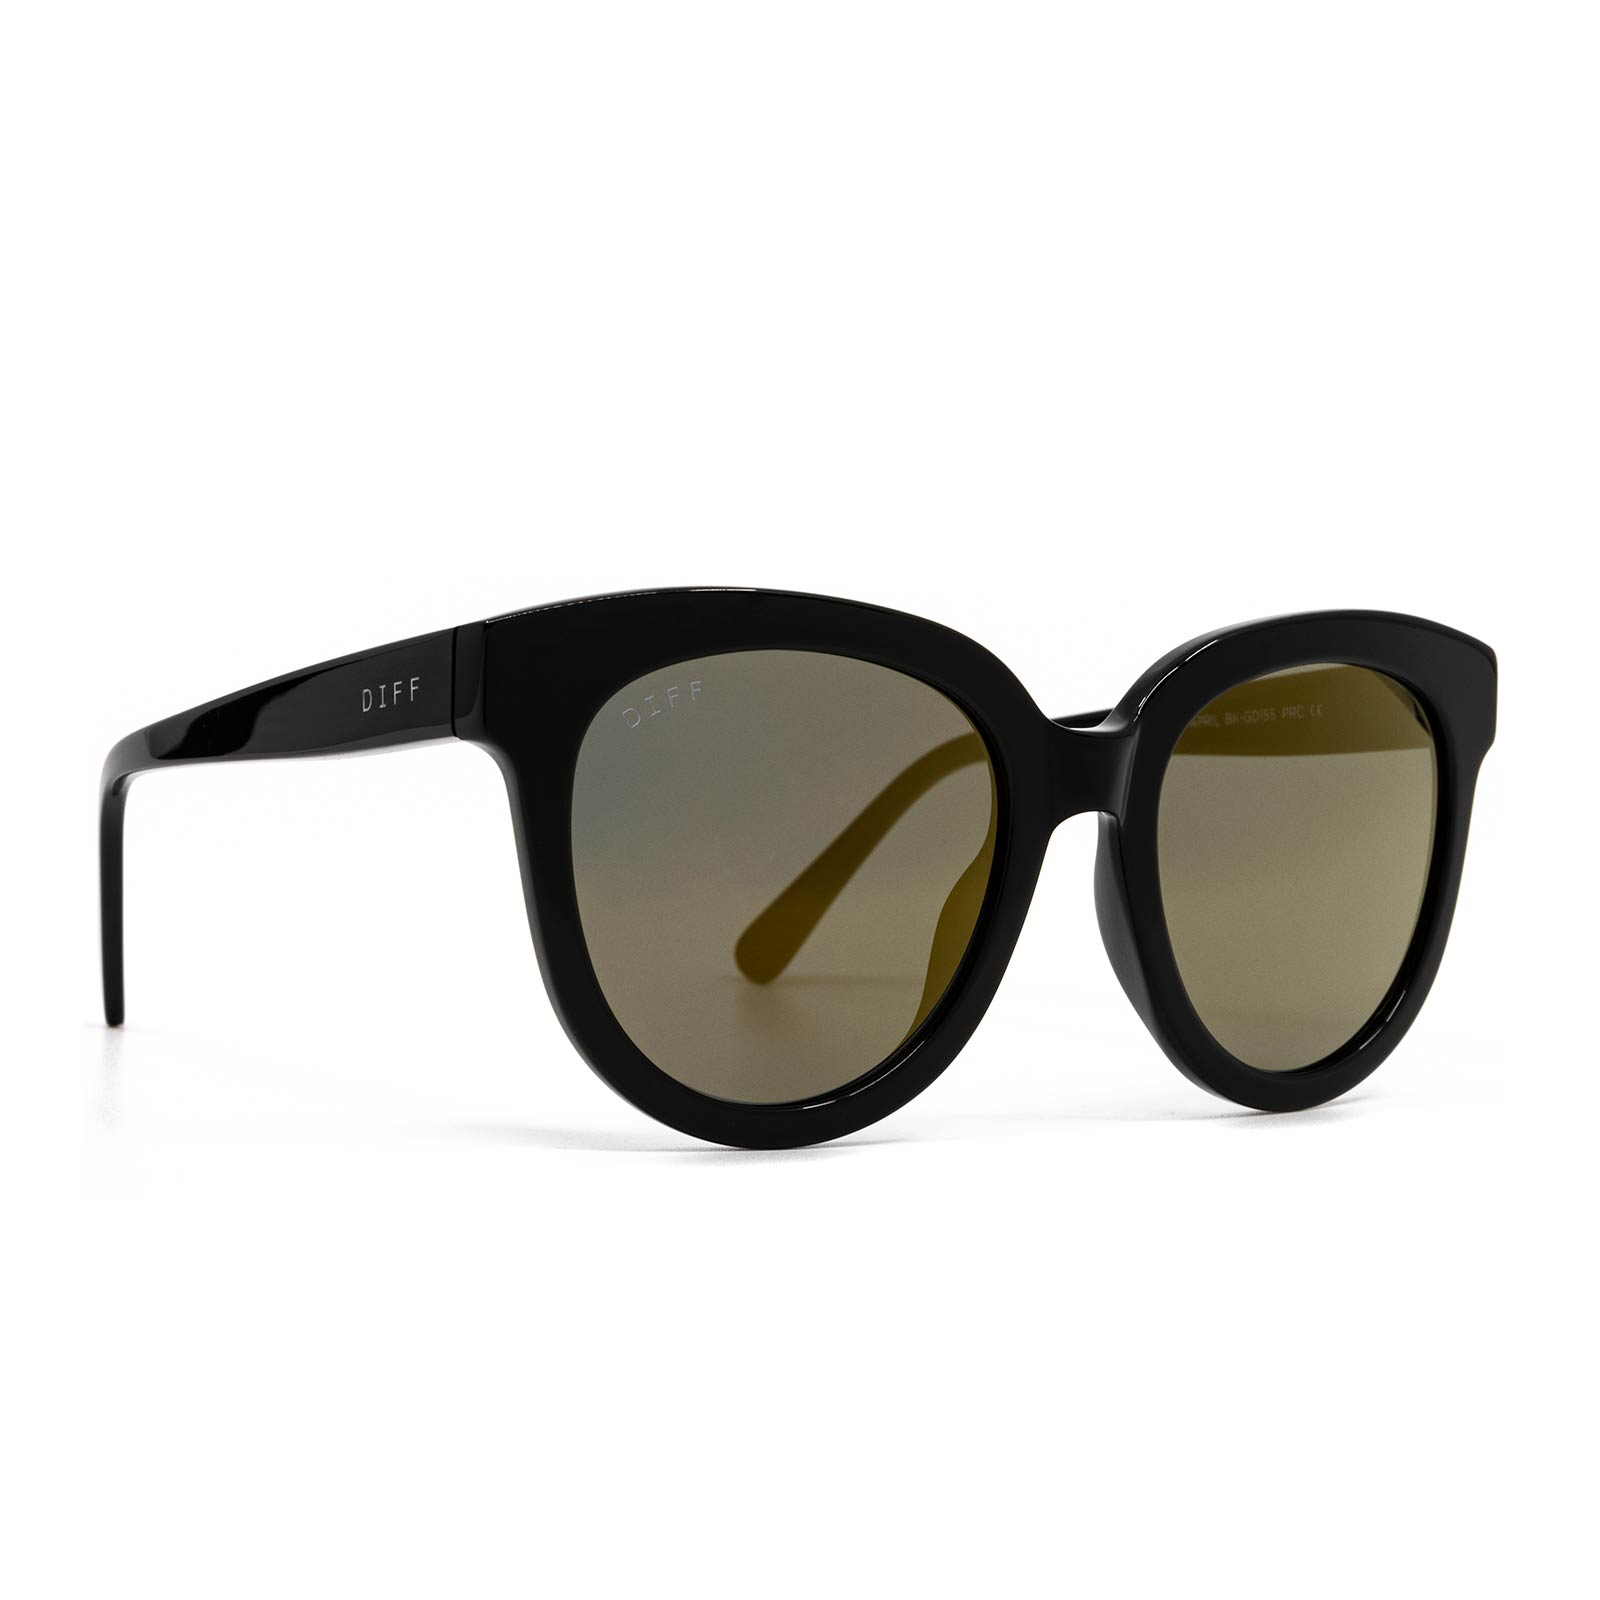 April sunglasses with black frame and gold mirror lens- angle view